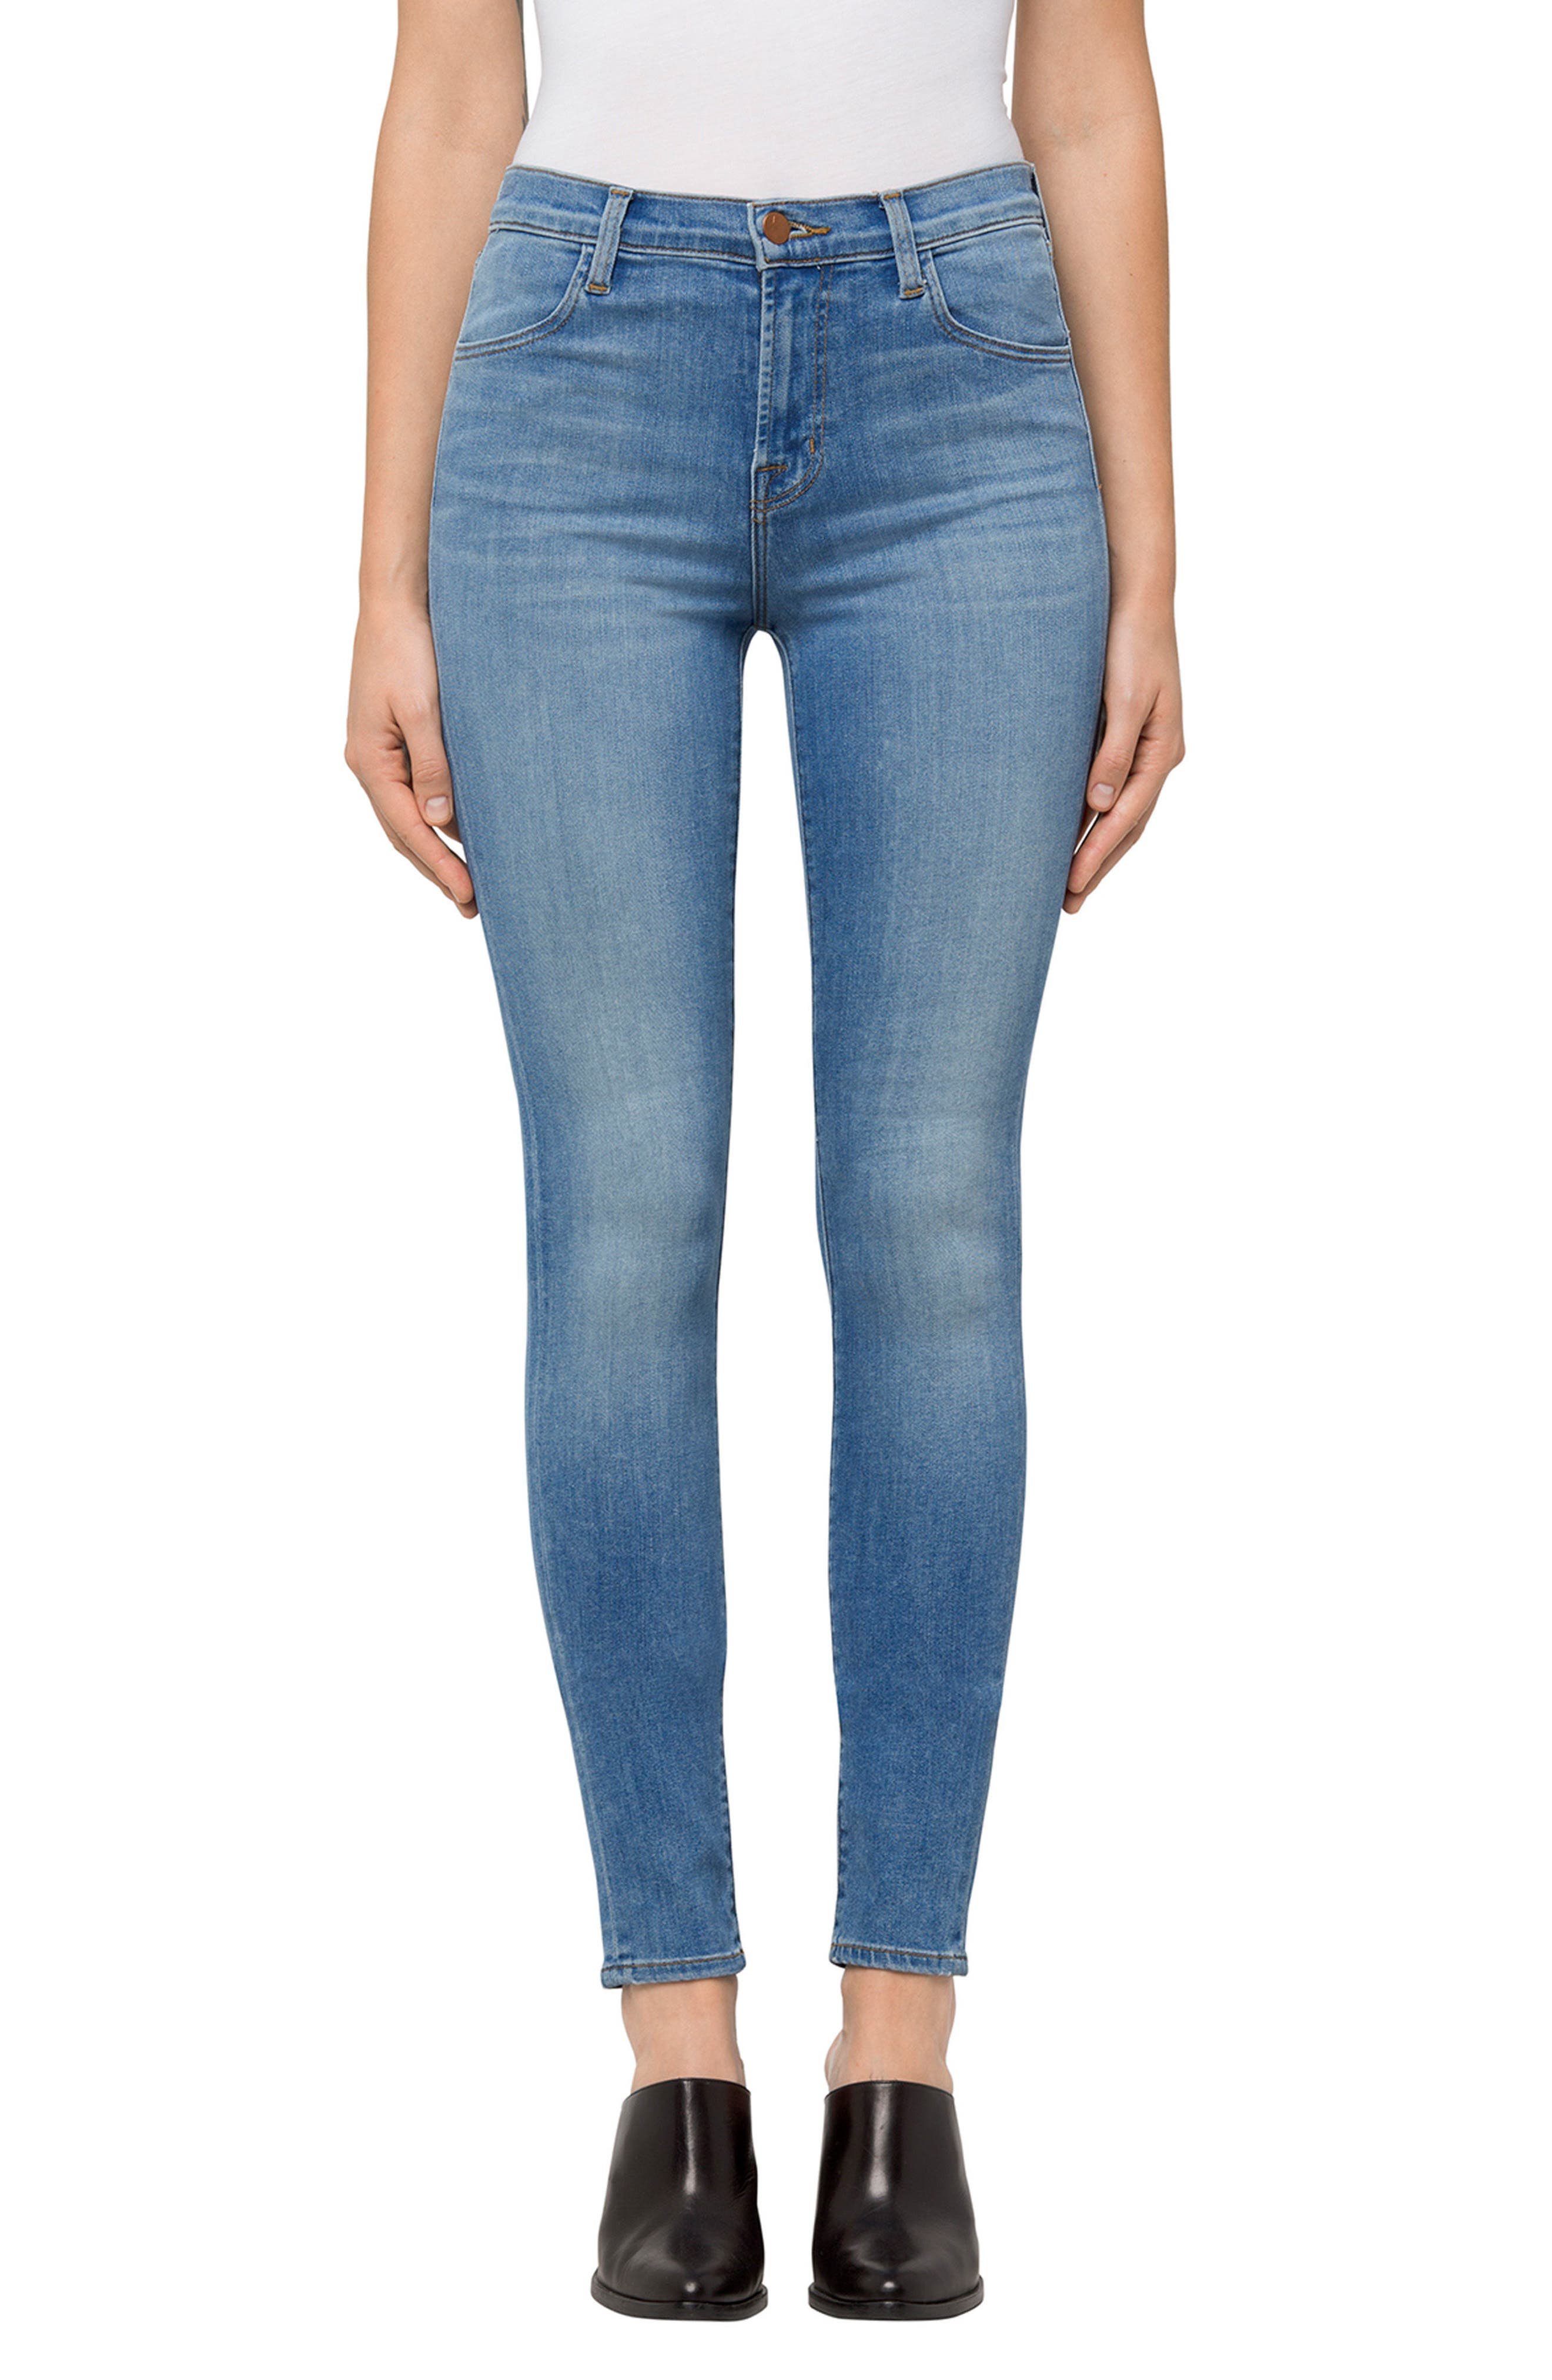 Maria High Waist Skinny Jeans,                         Main,                         color, Influential